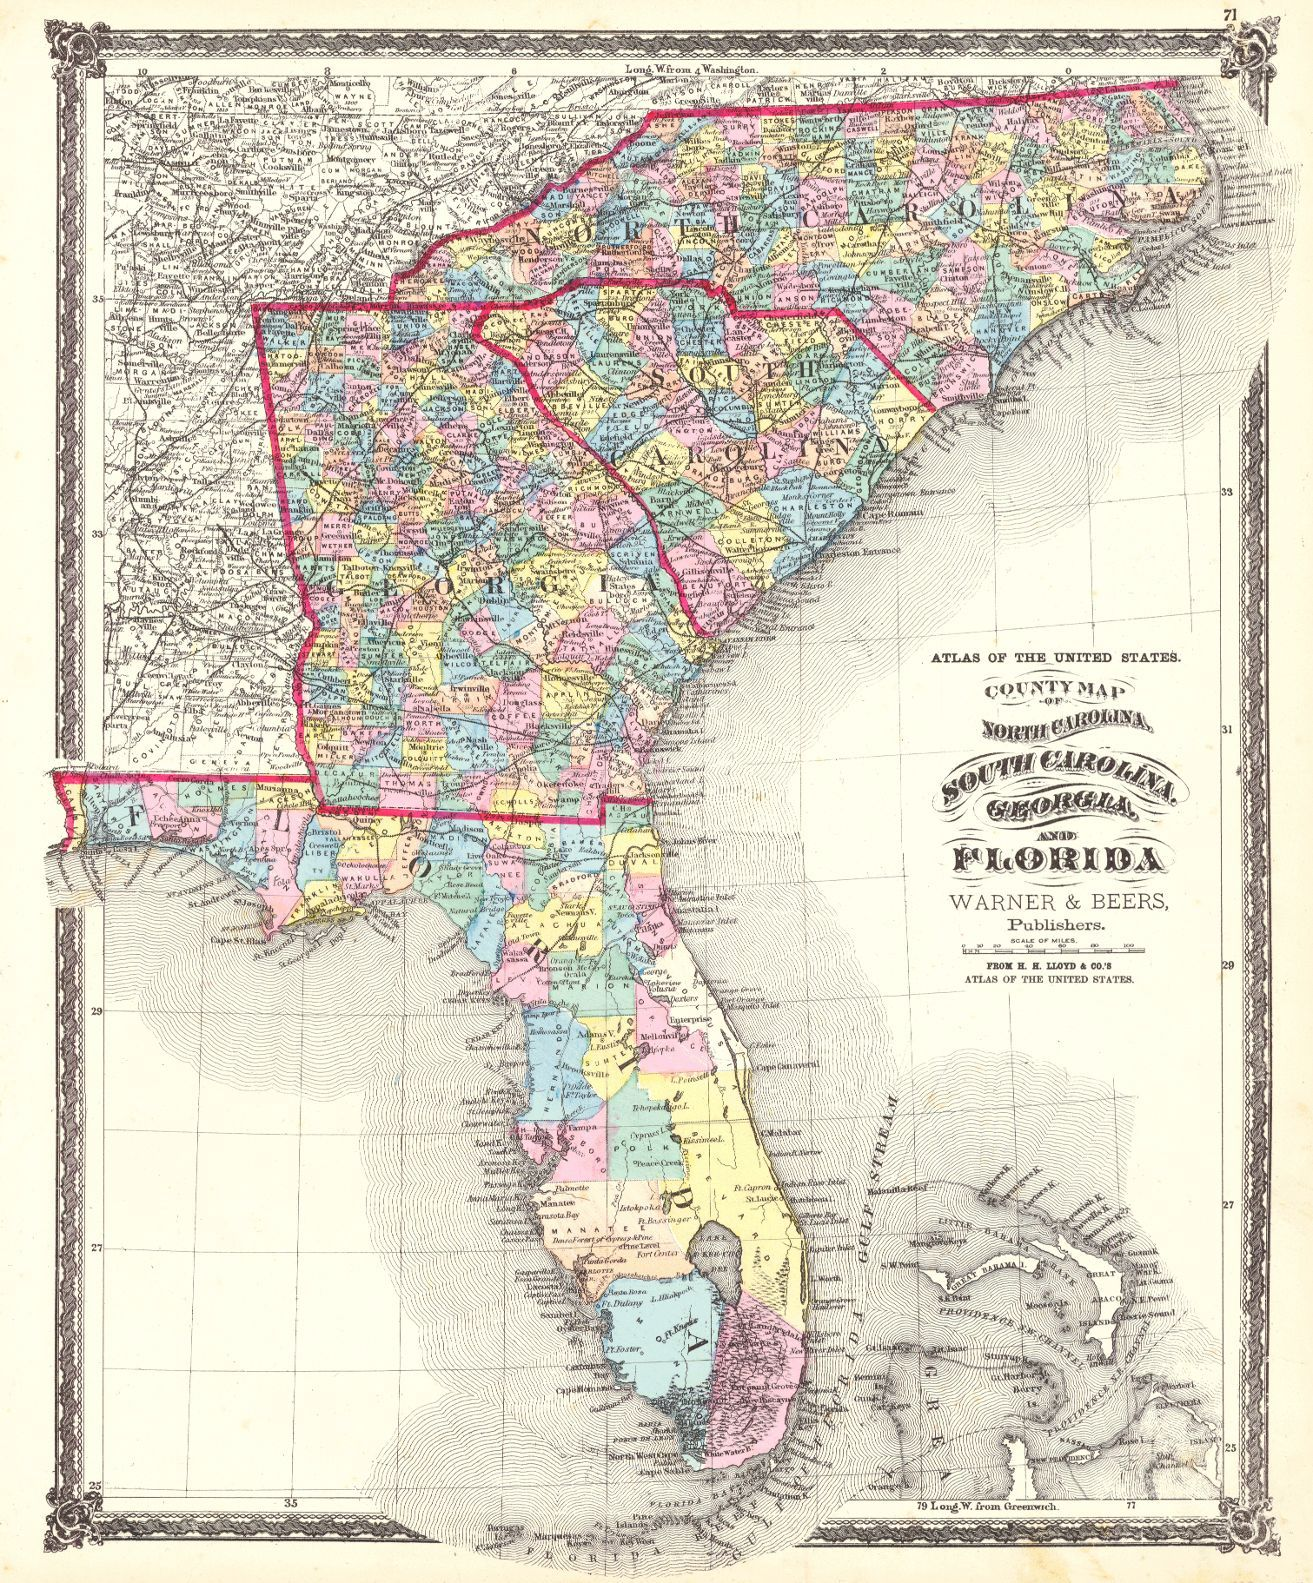 Atlas Of The United States County Map Of North Carolina South - United states counties map